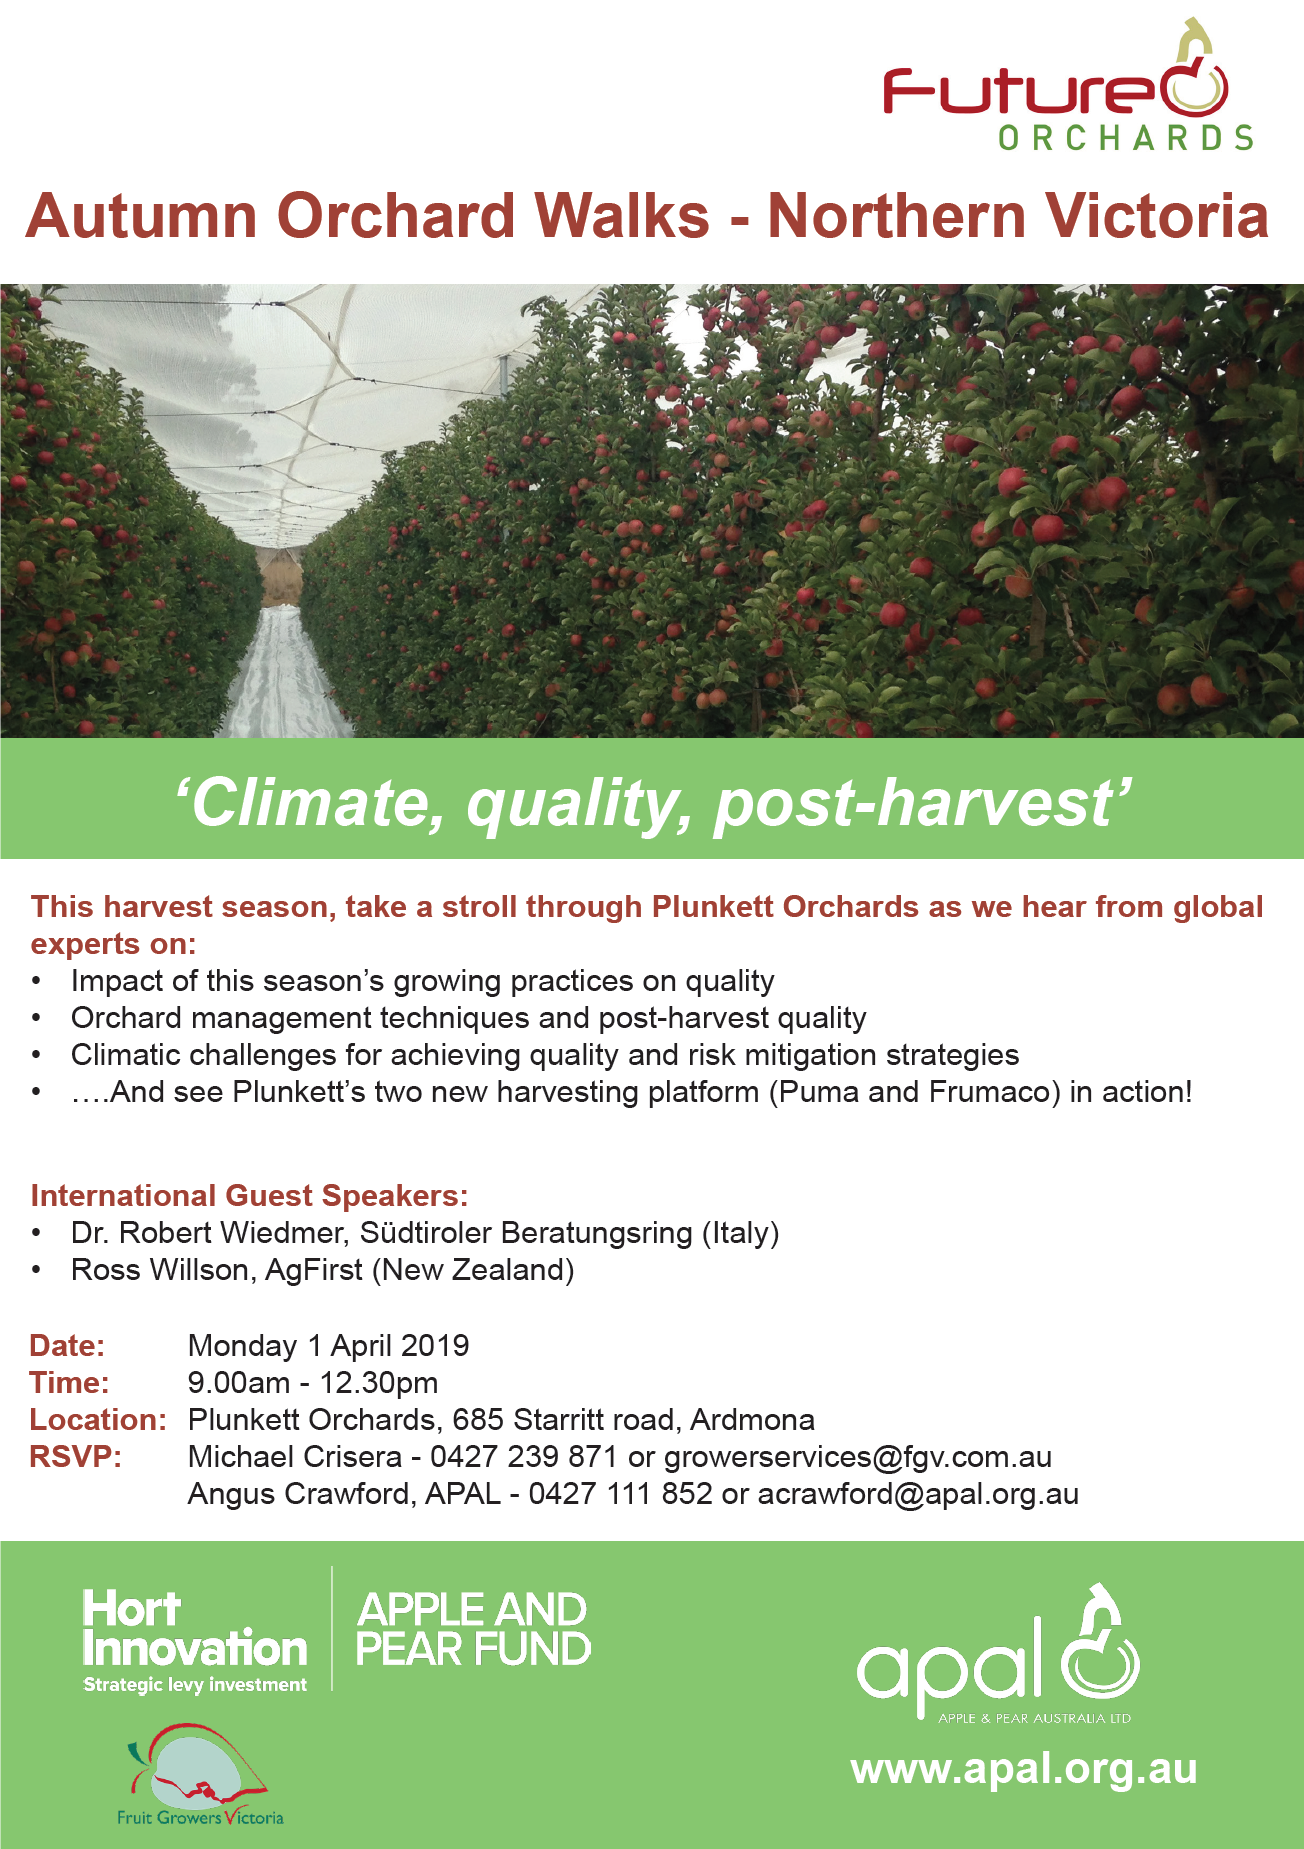 Future Orchards Autumn Orchard Walks Northern Vic